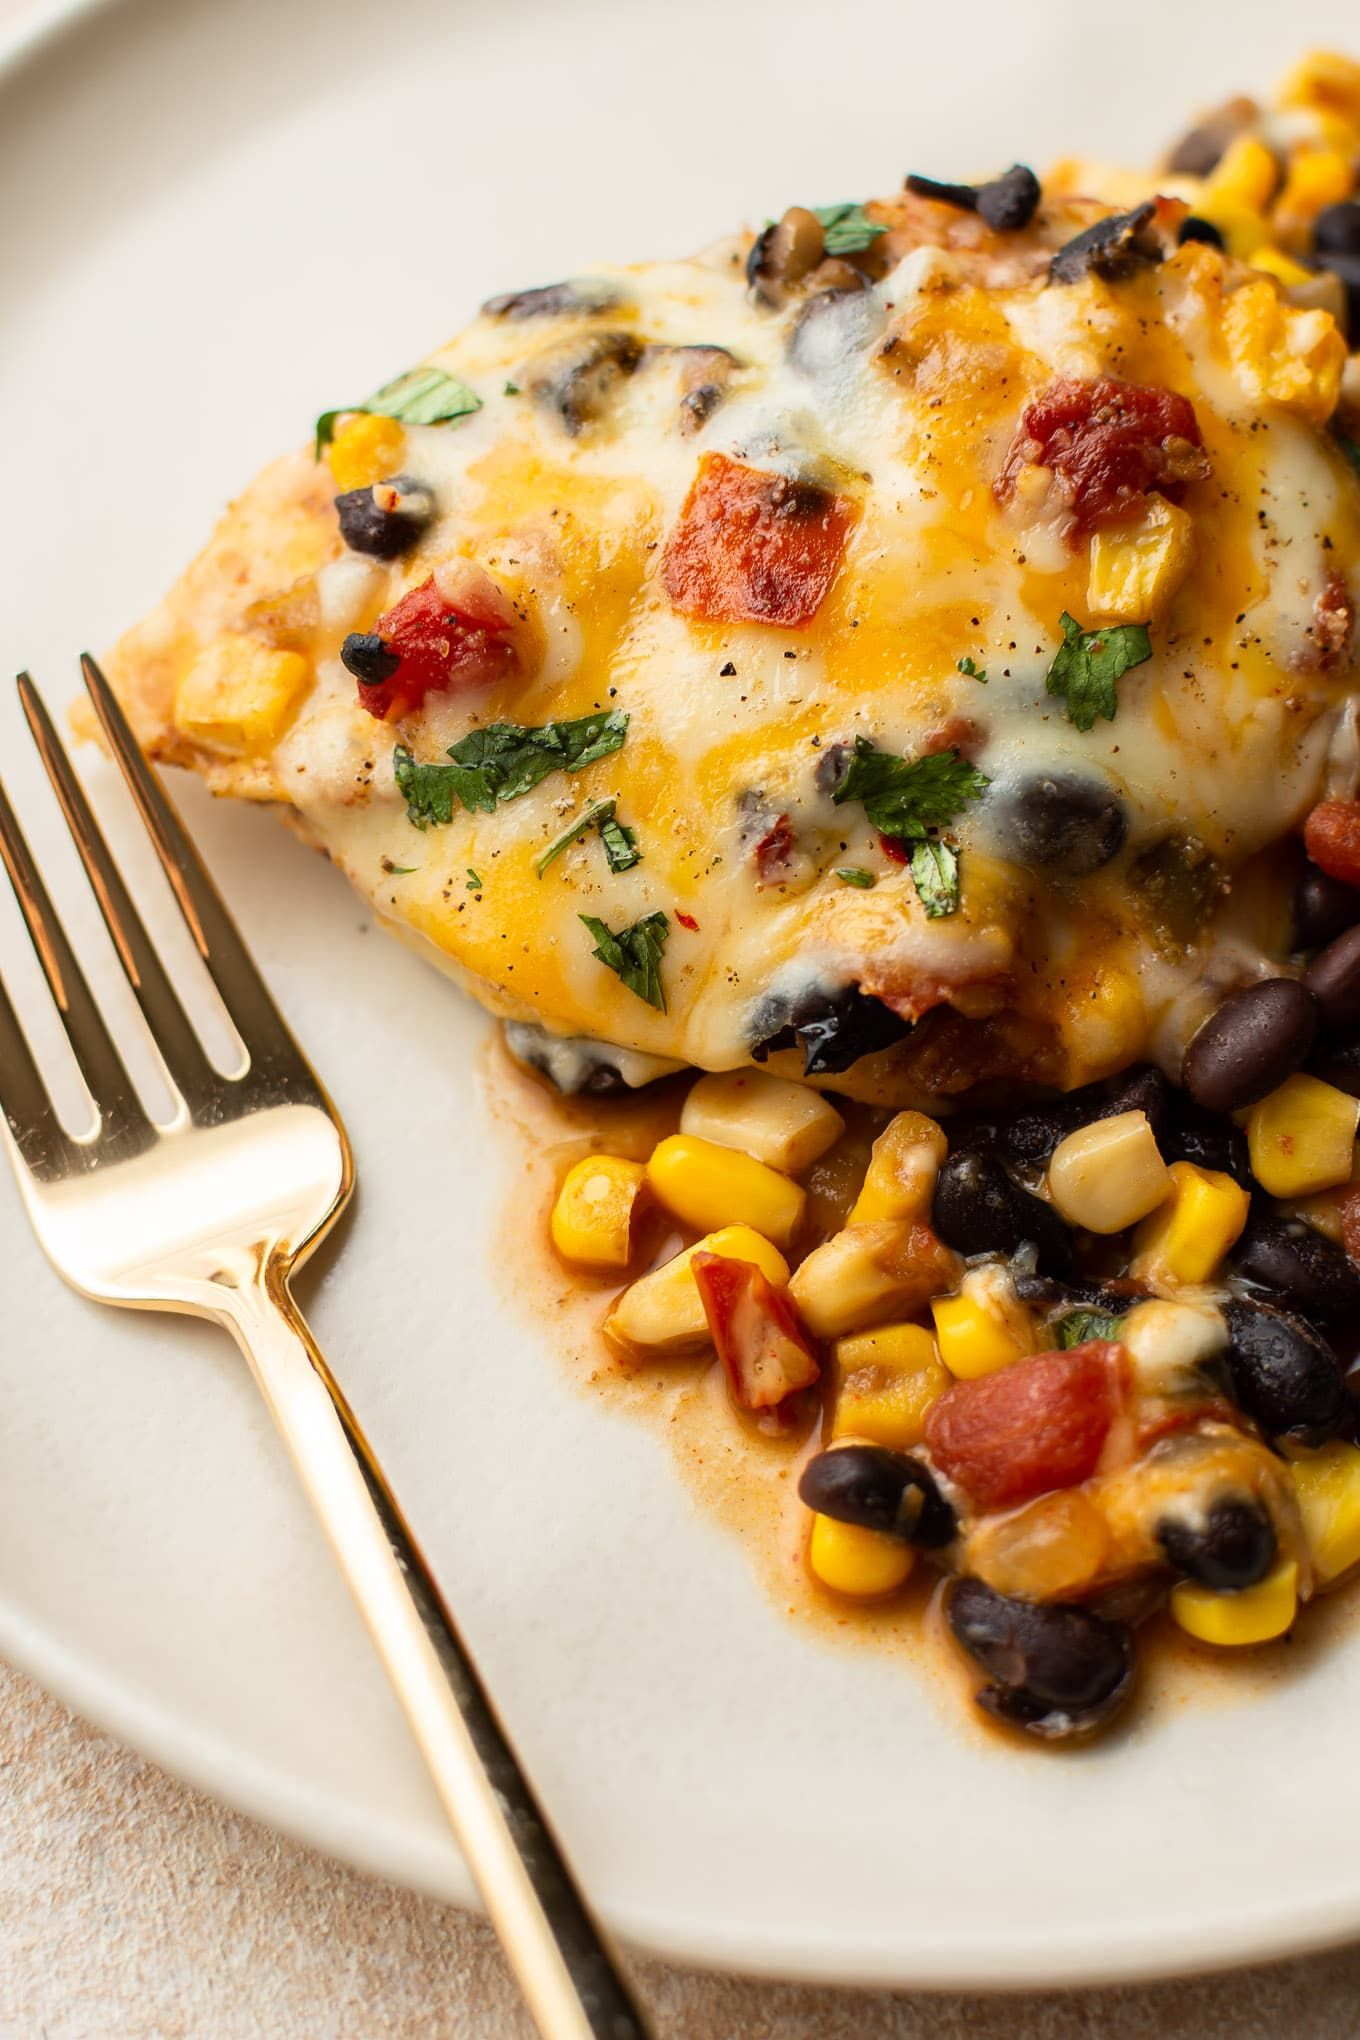 Santa Fe Chicken Is Simple And Incredibly Delicious For Busy Weeknight Dinners Black Beans Corn R Yummy Chicken Recipes Southwest Recipes Easy Skillet Meals